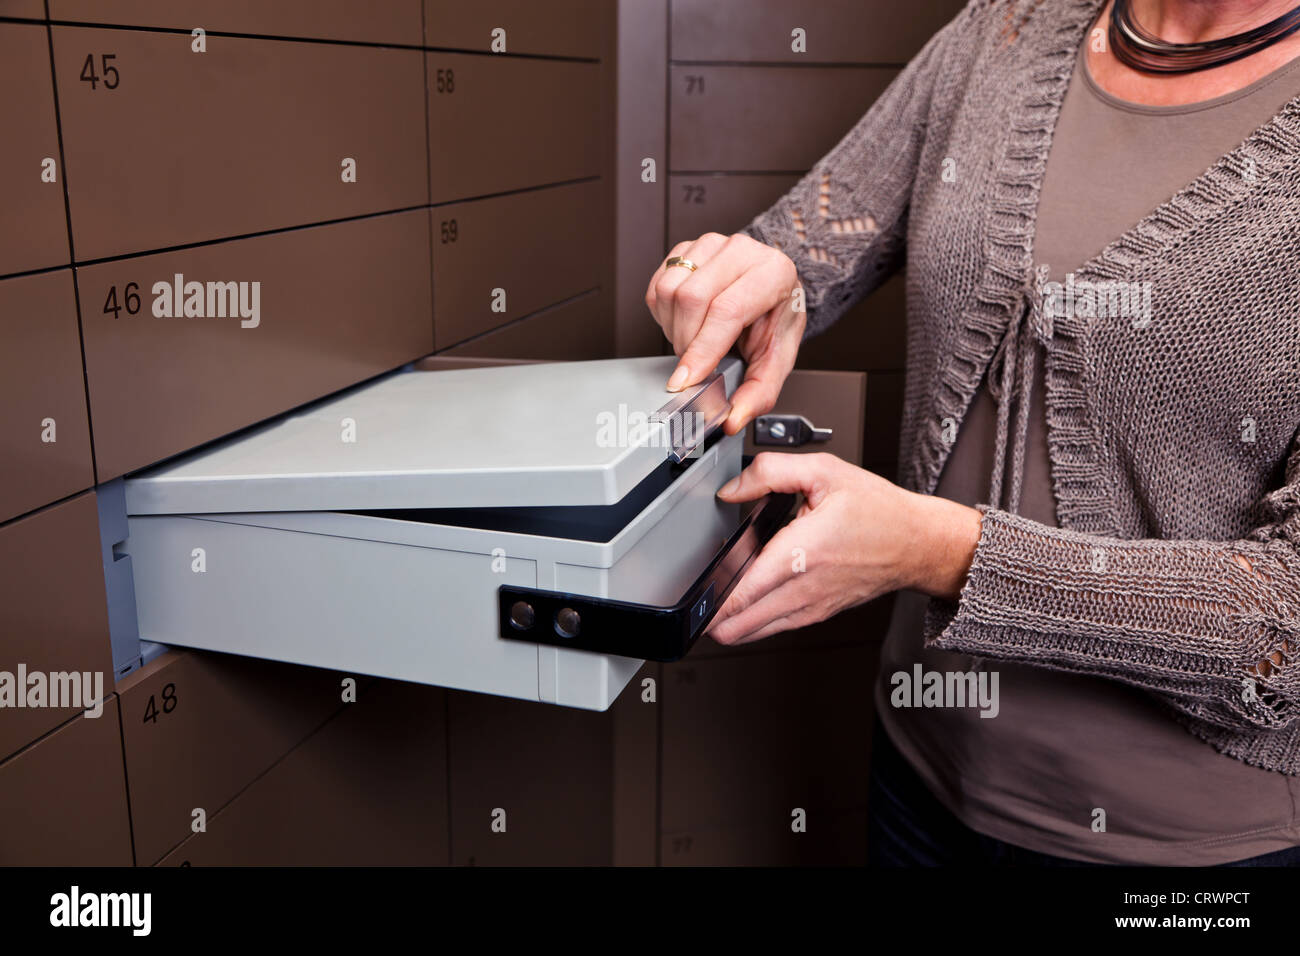 Locker in a bank vault - Stock Image